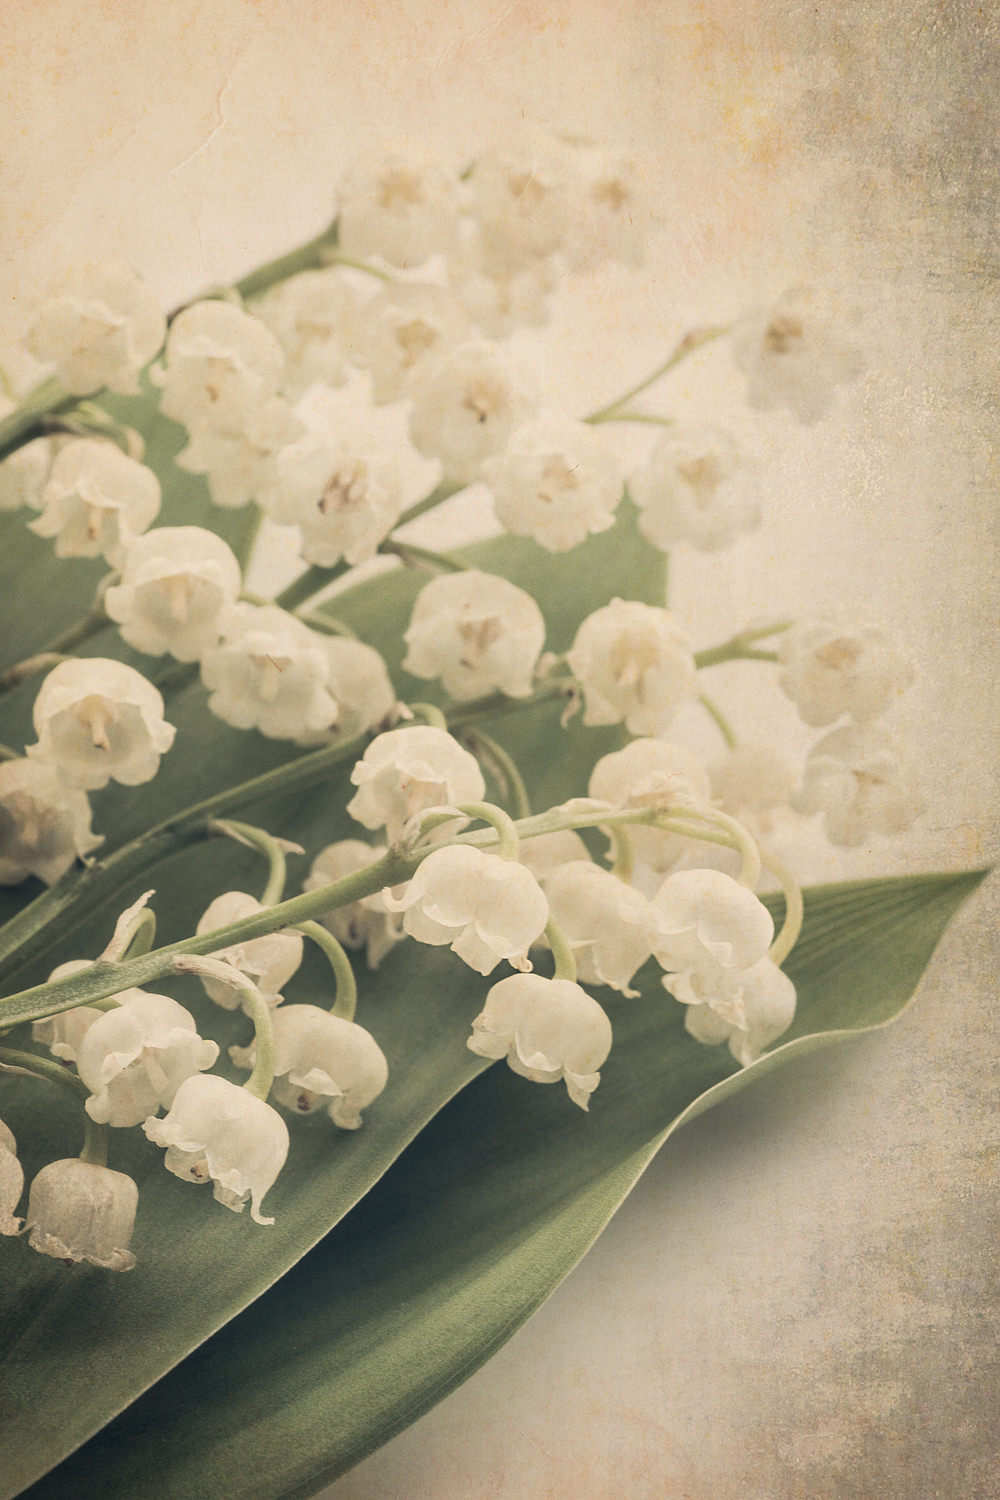 Scents of Spring - Lily of the Valley ii